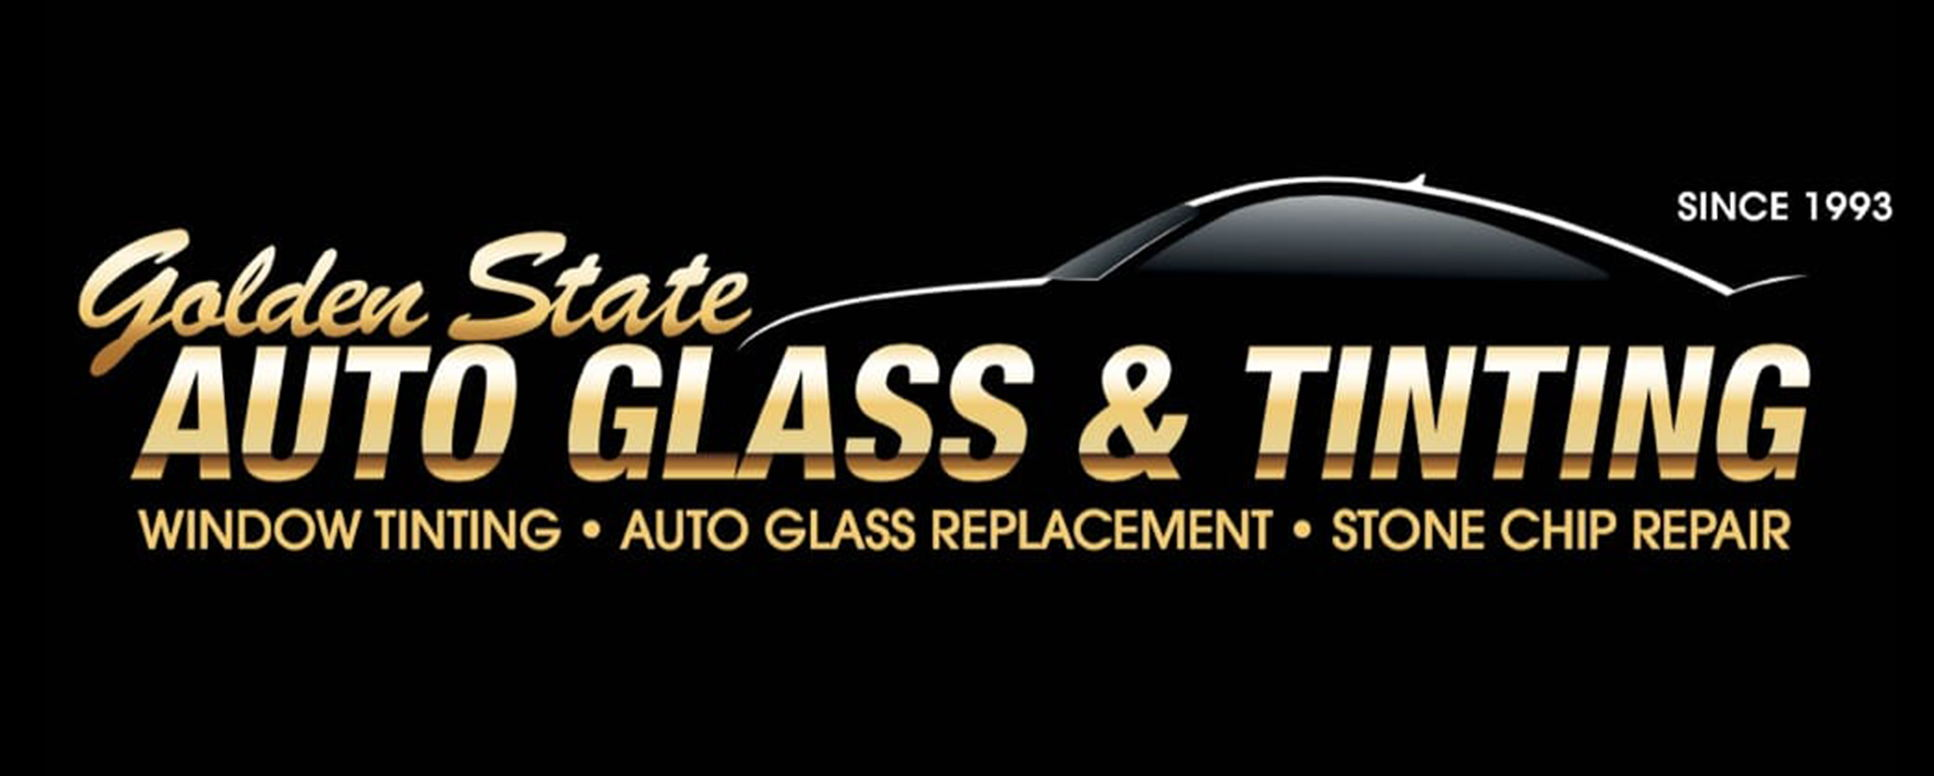 Golden State Auto Glass & Tinting